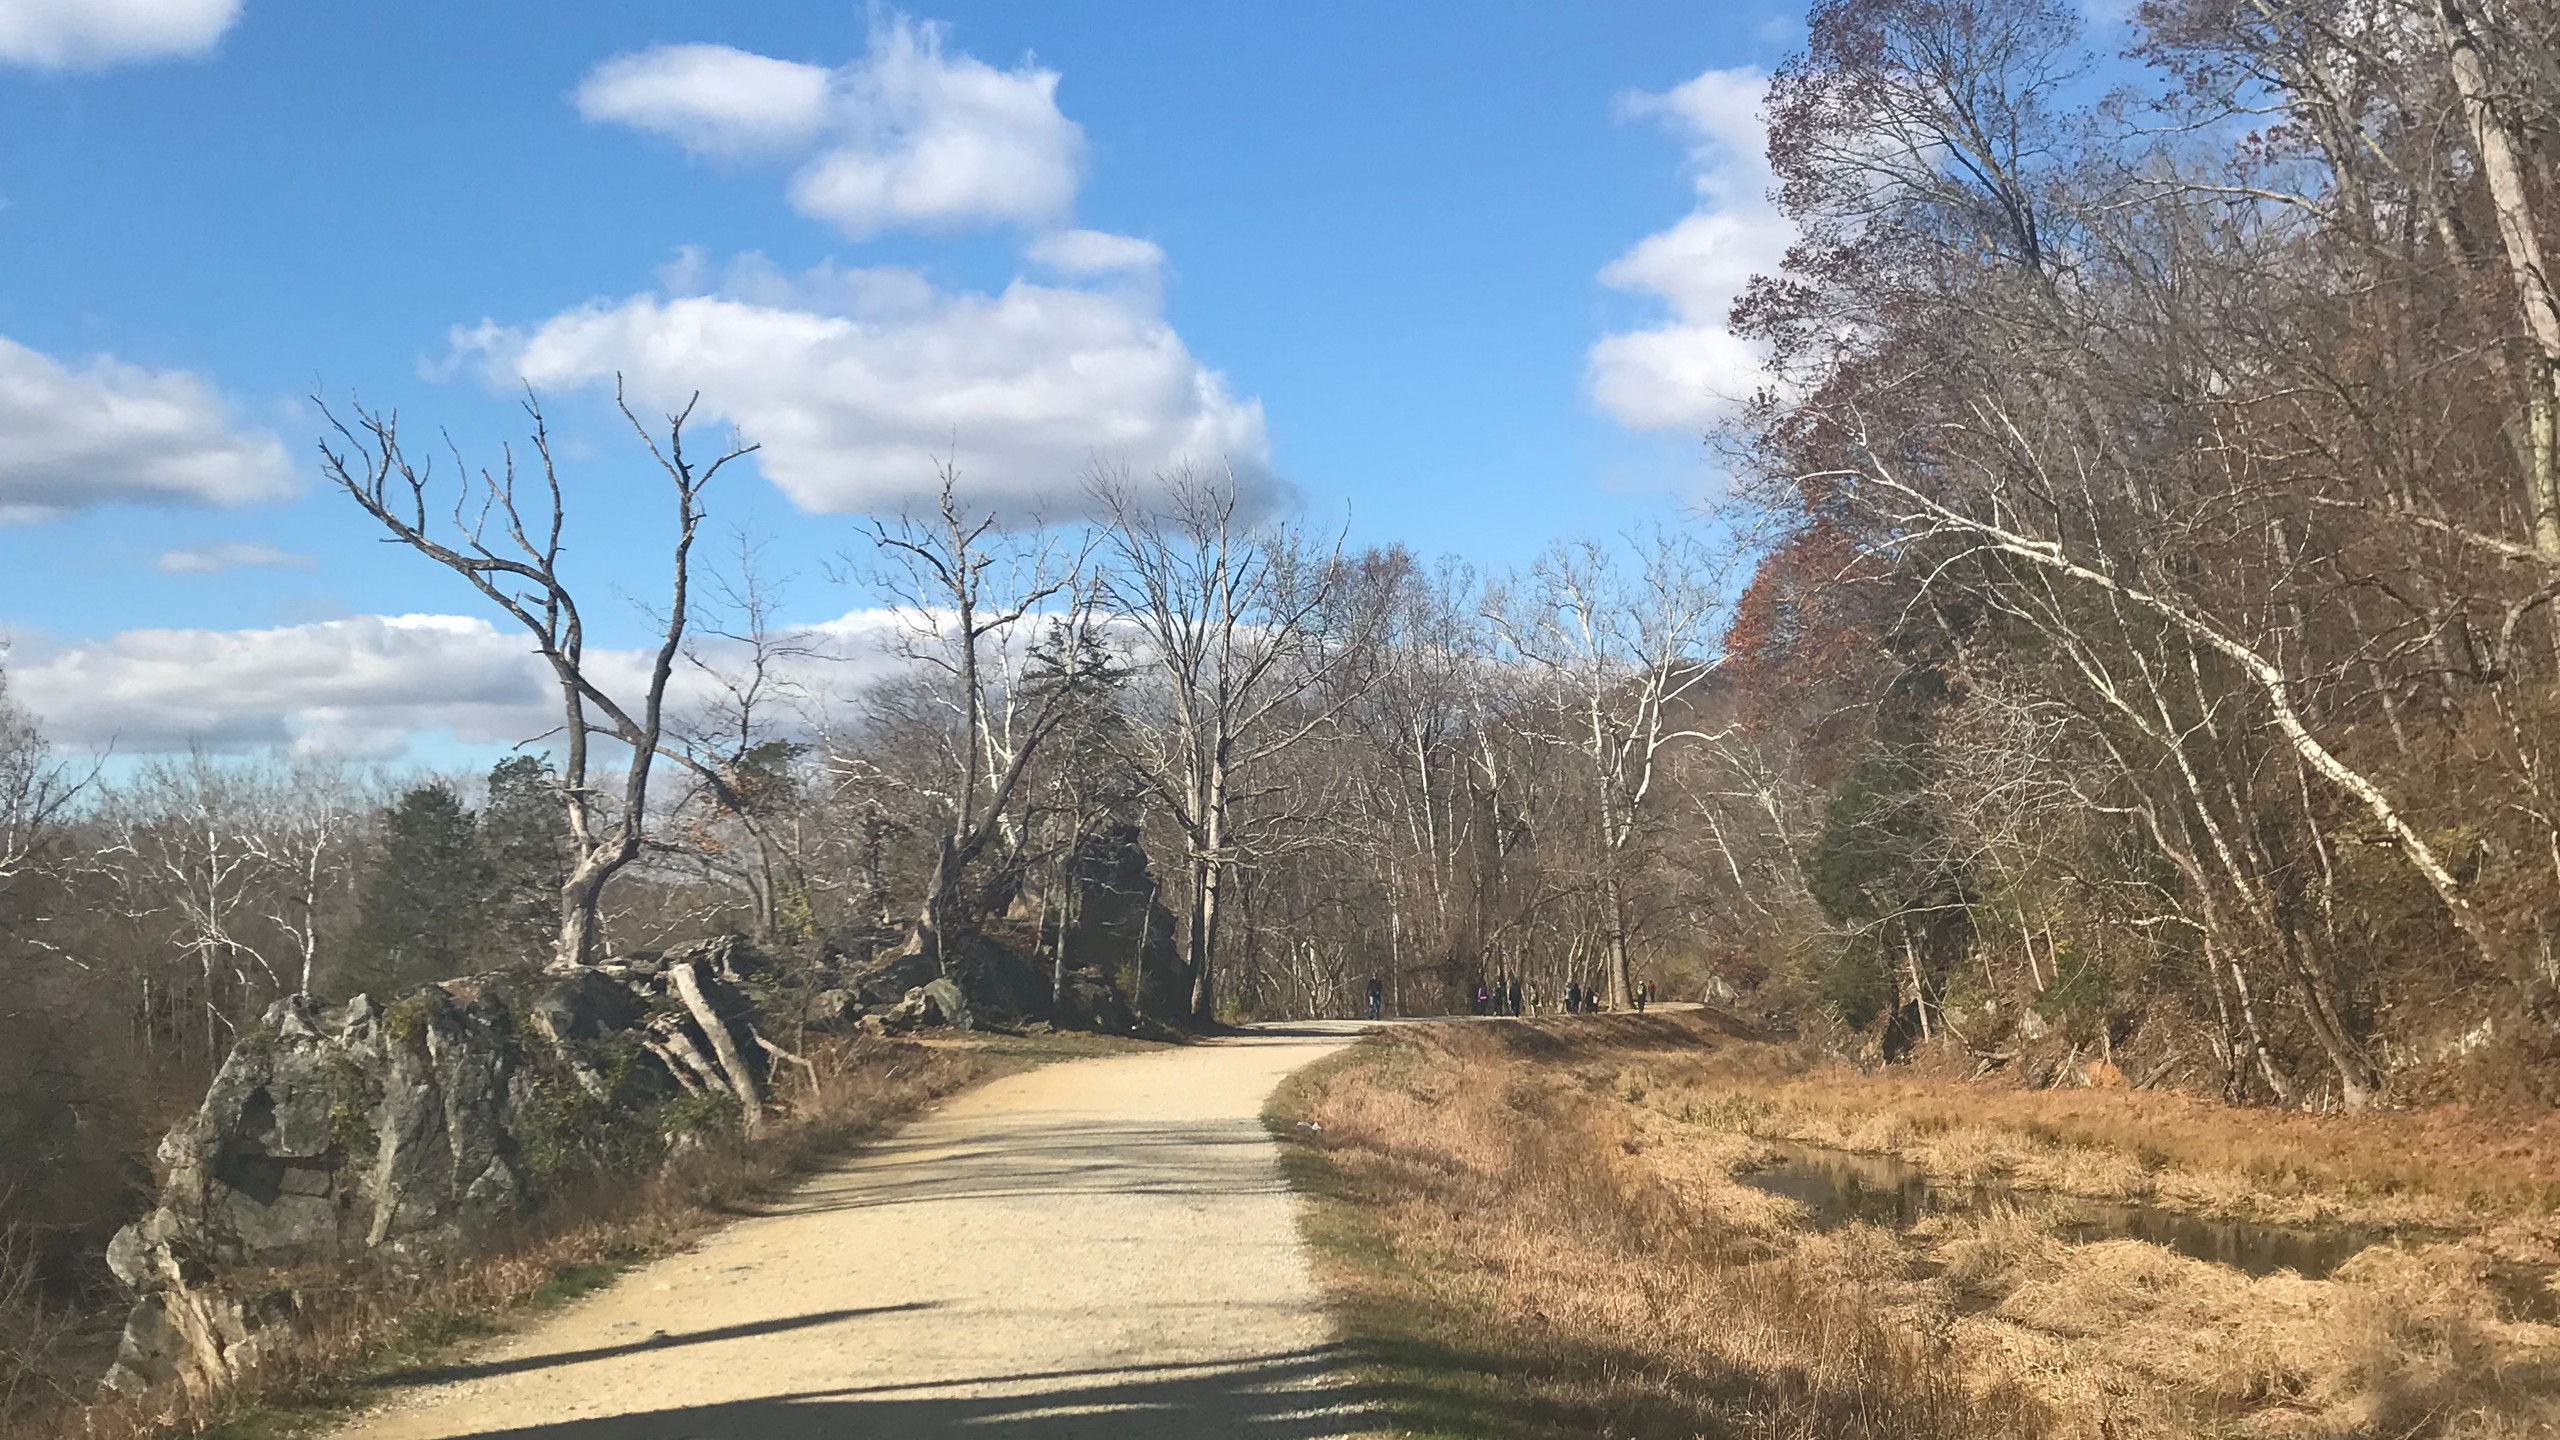 The C&O Canal Towpath